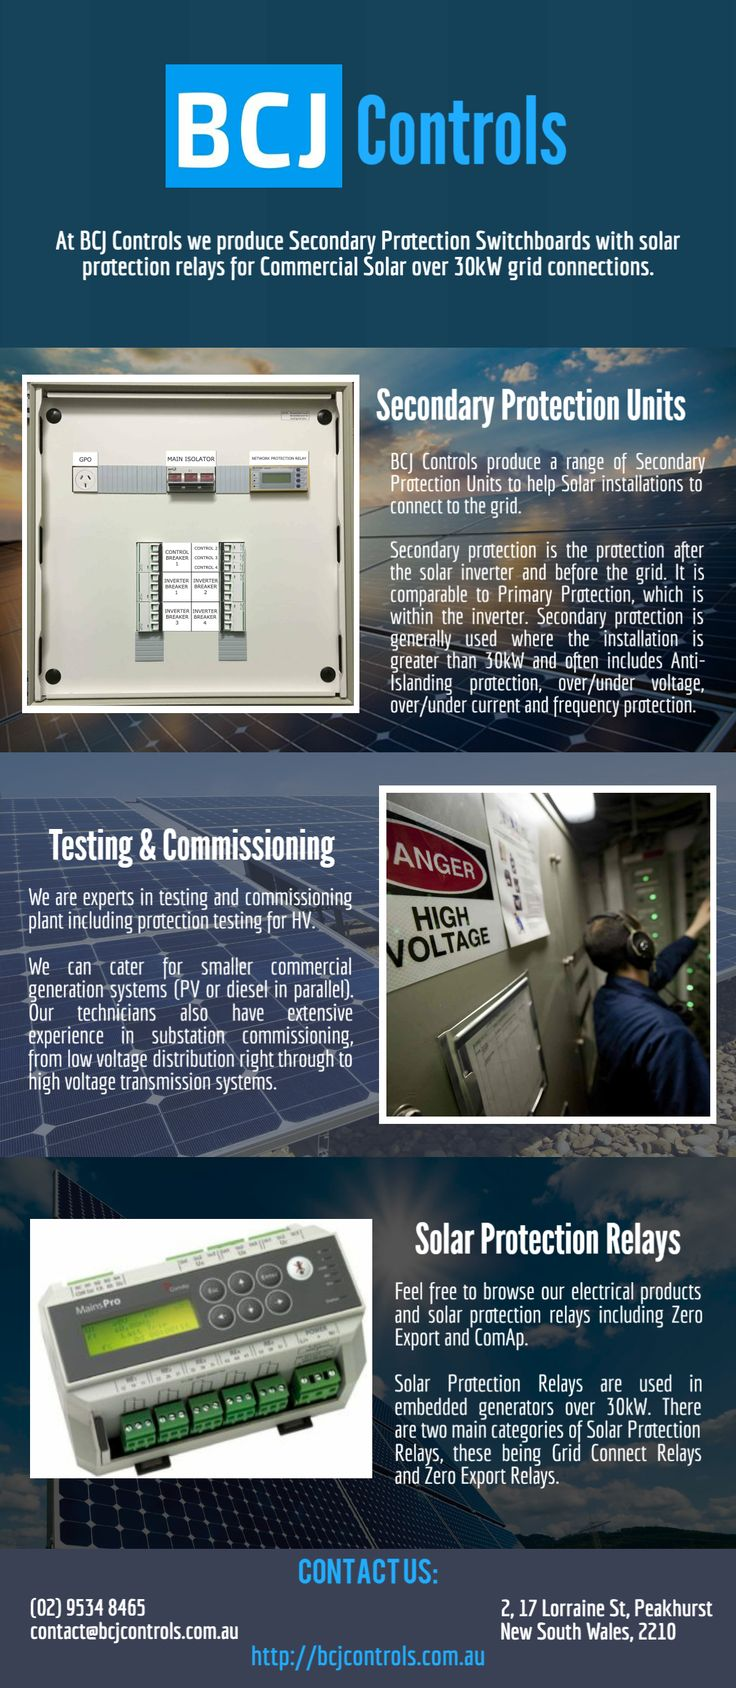 BCJ Control aiming to serve quality works in the field of Electricity. Providing best secondary protection units, expert in testing and commissioning and quality solar protection relays.